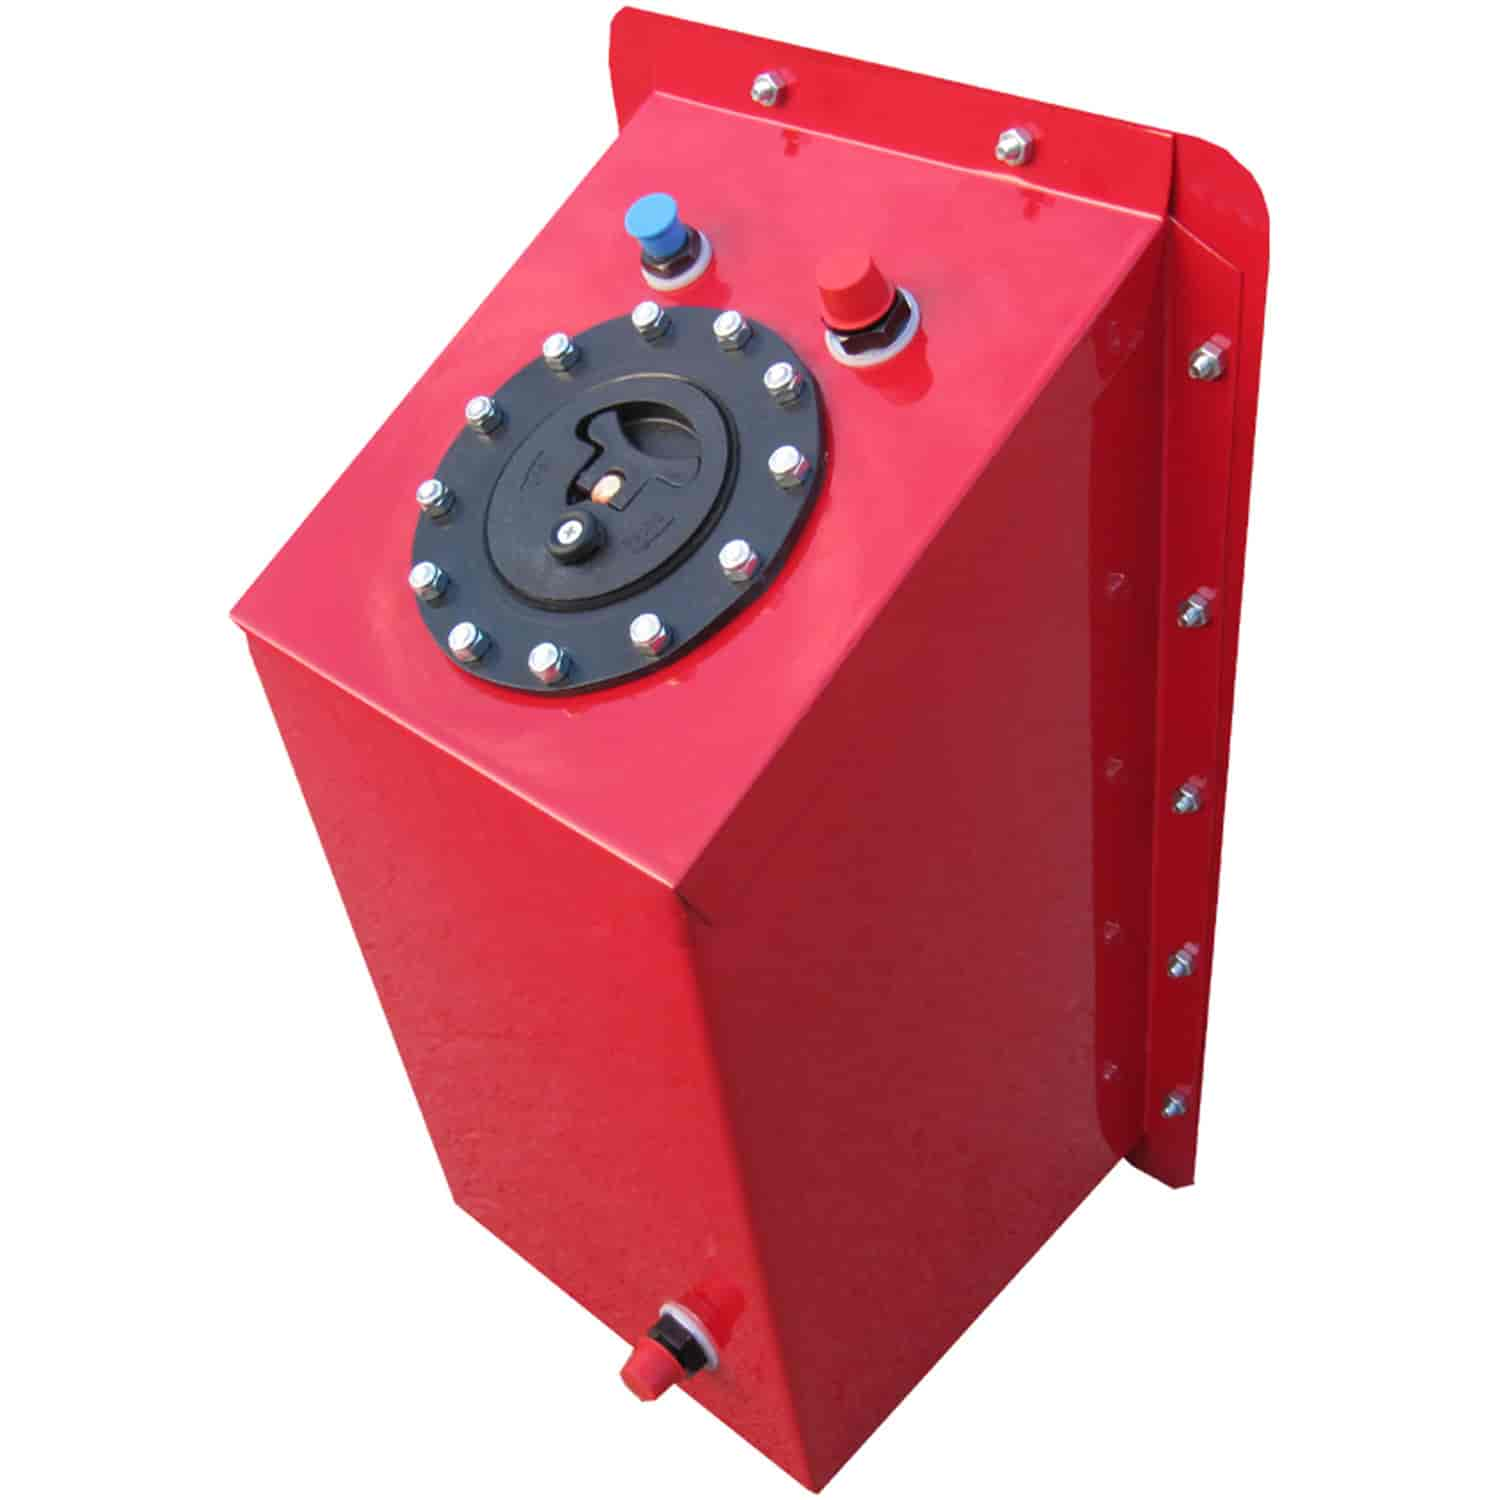 RCI Red Circle Track Fuel Cell Capacity: 4 gallons